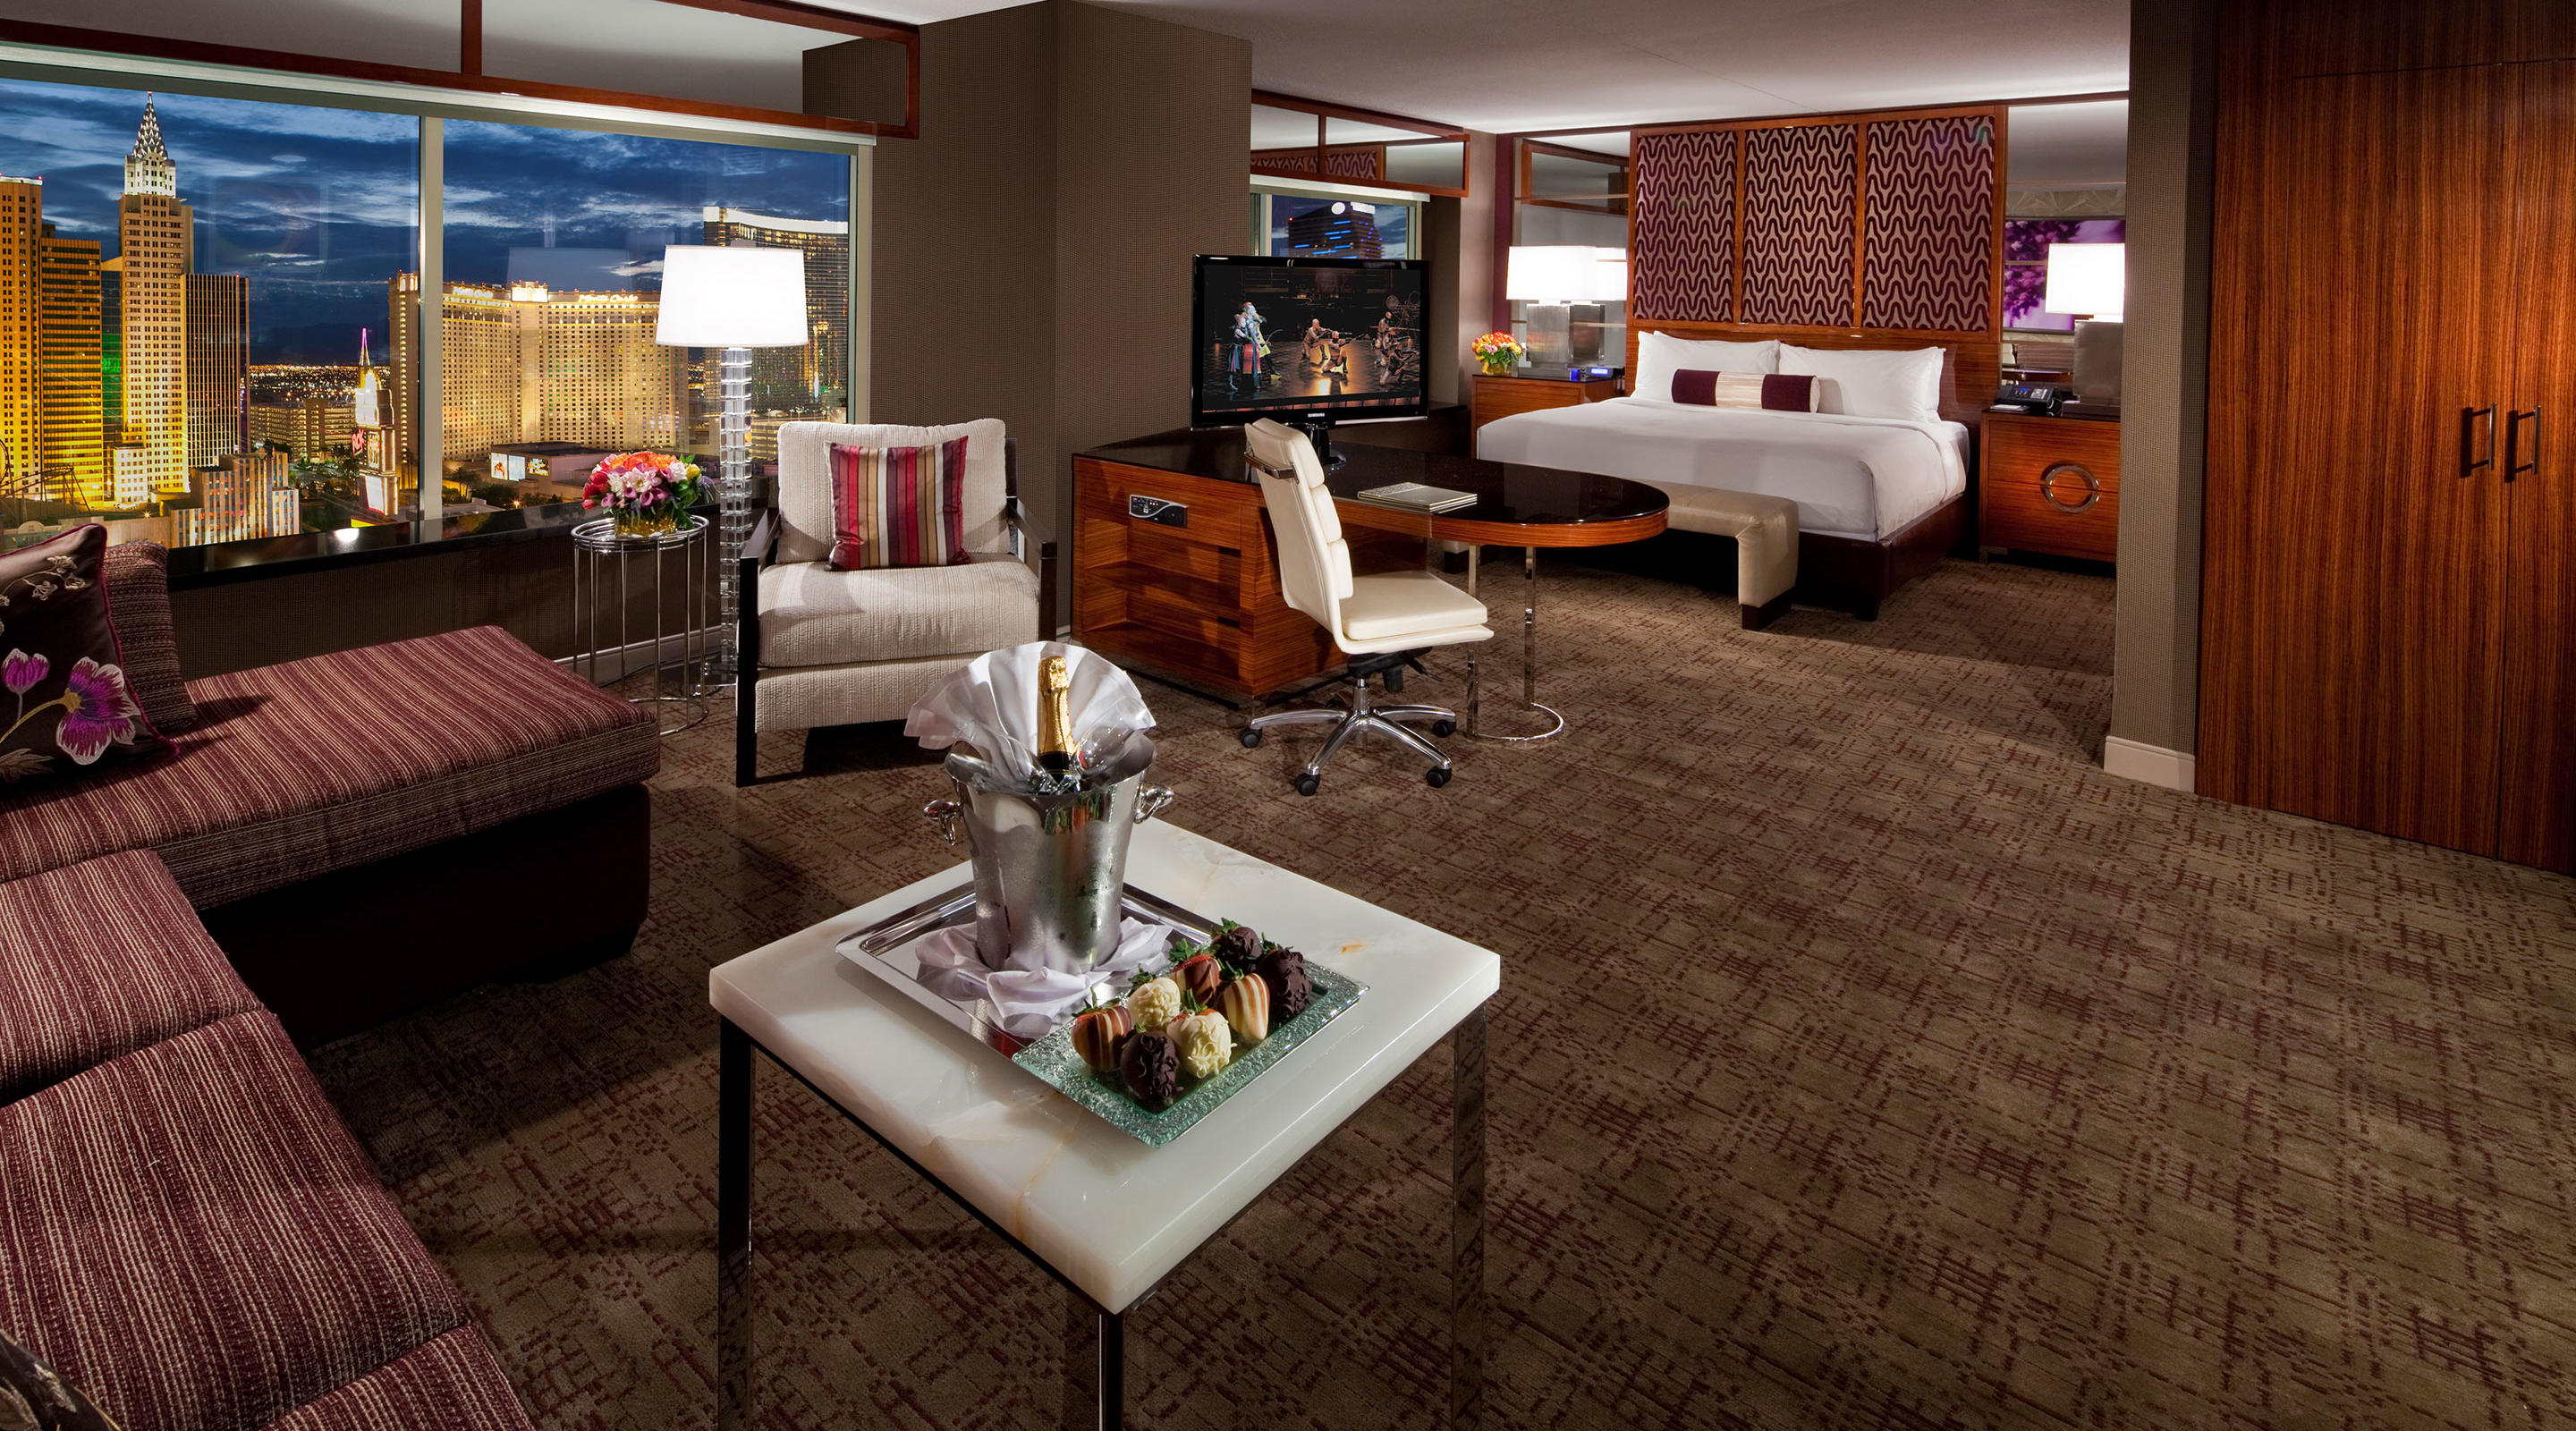 2 Bedroom Hotel Suites In Las Vegas On The Strip 28 Images The Two Bedroom Suite At The